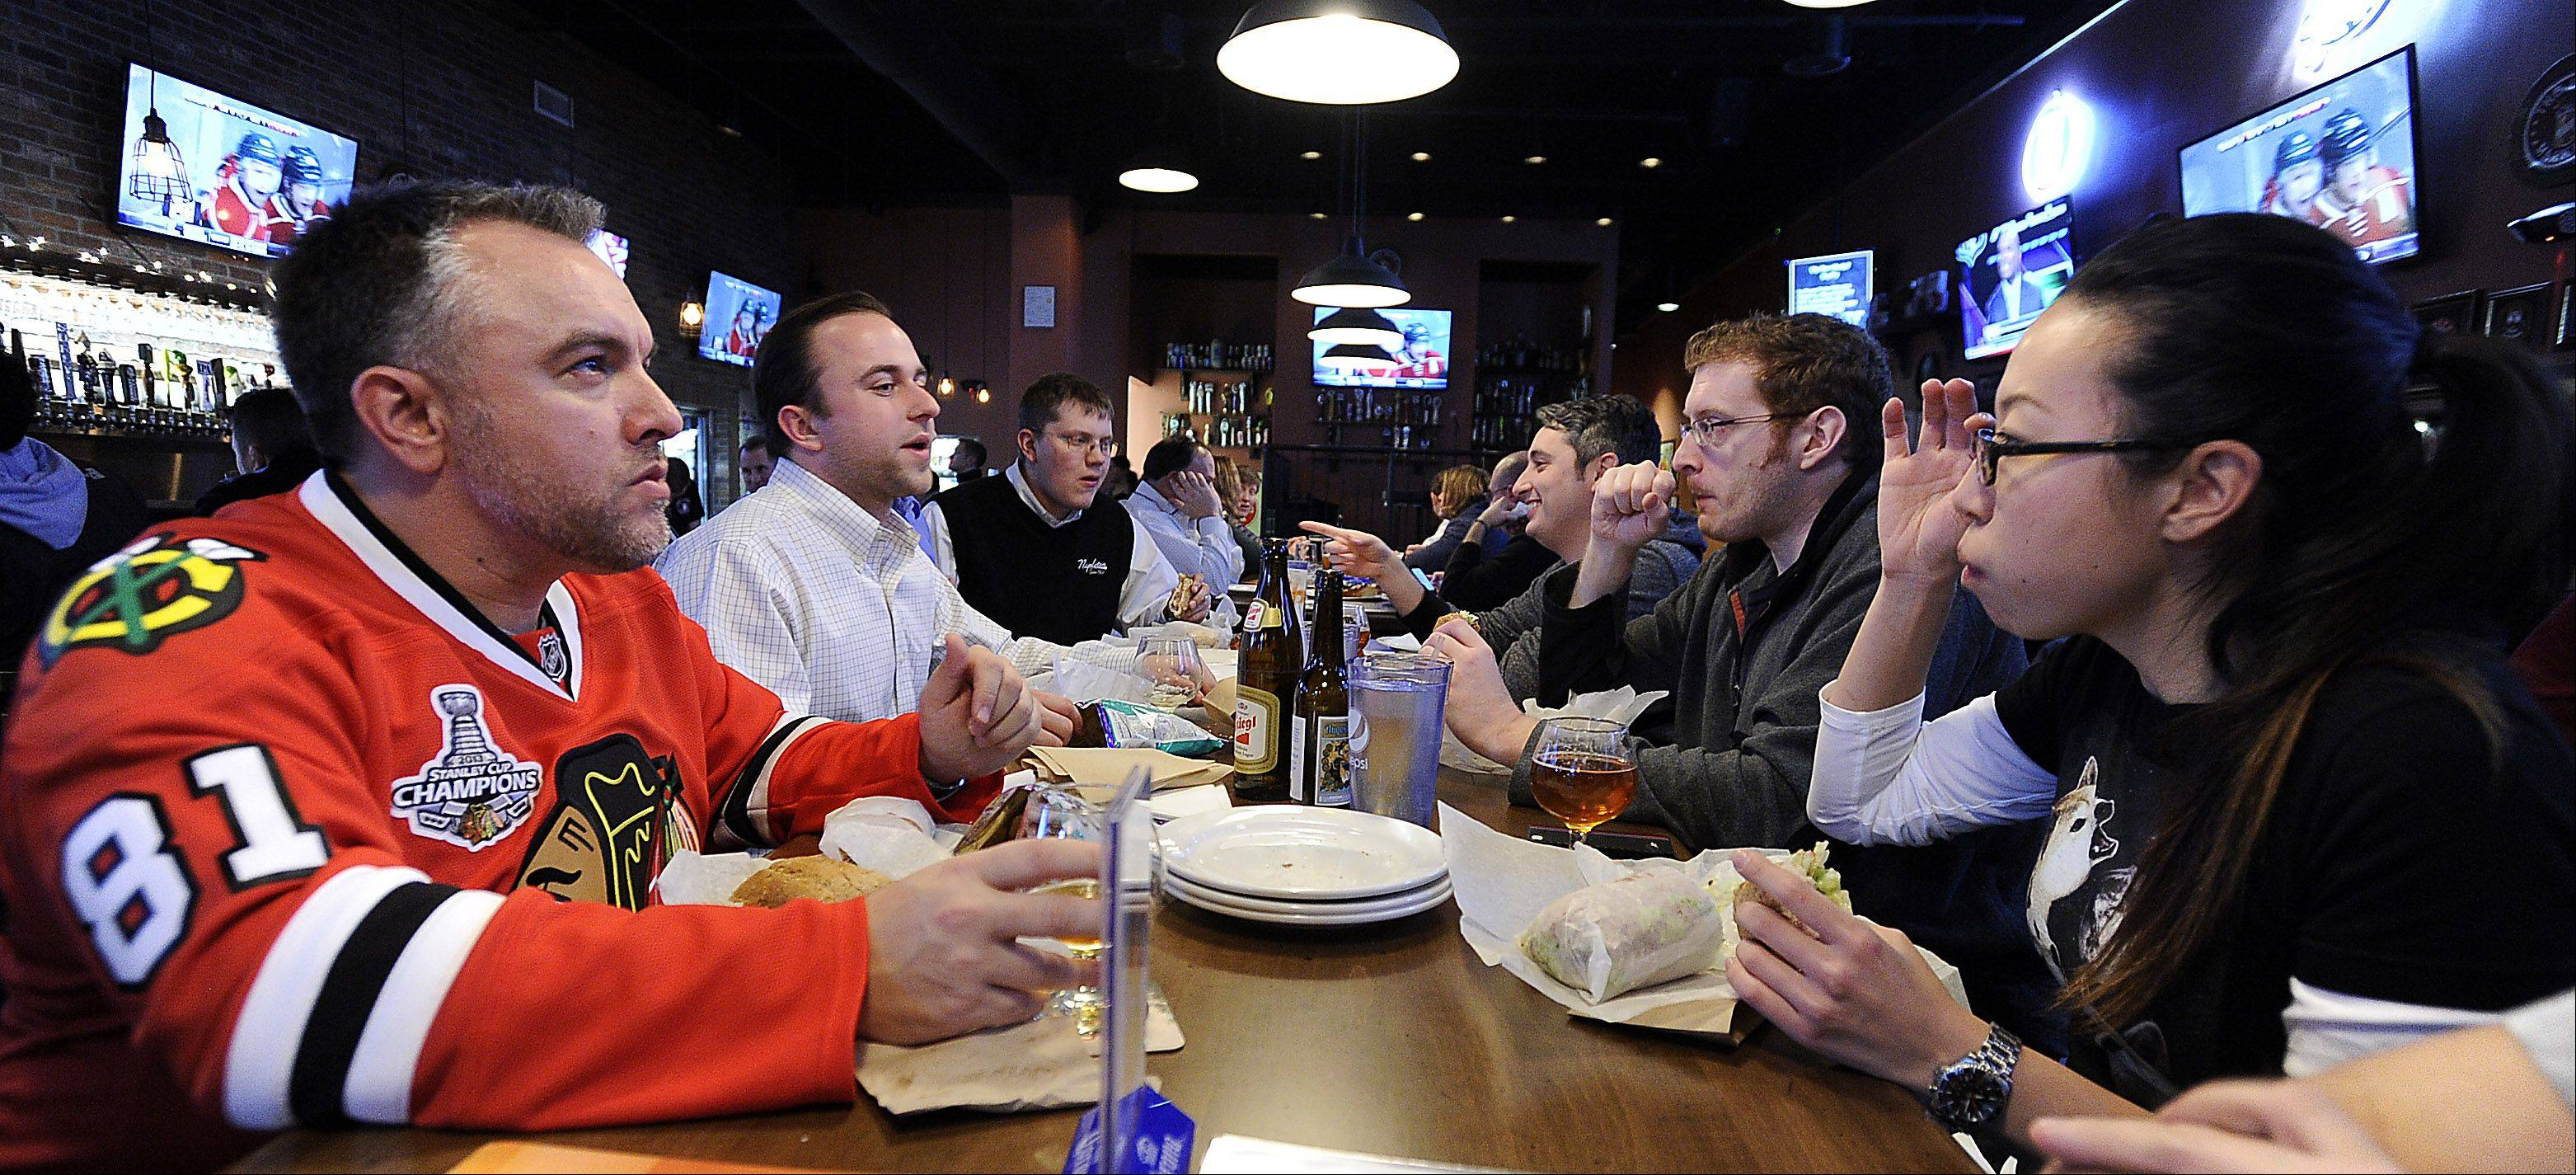 The Beer Market in Schaumburg draws hockey fans, like Jason Eberhardt of Elgin, left.